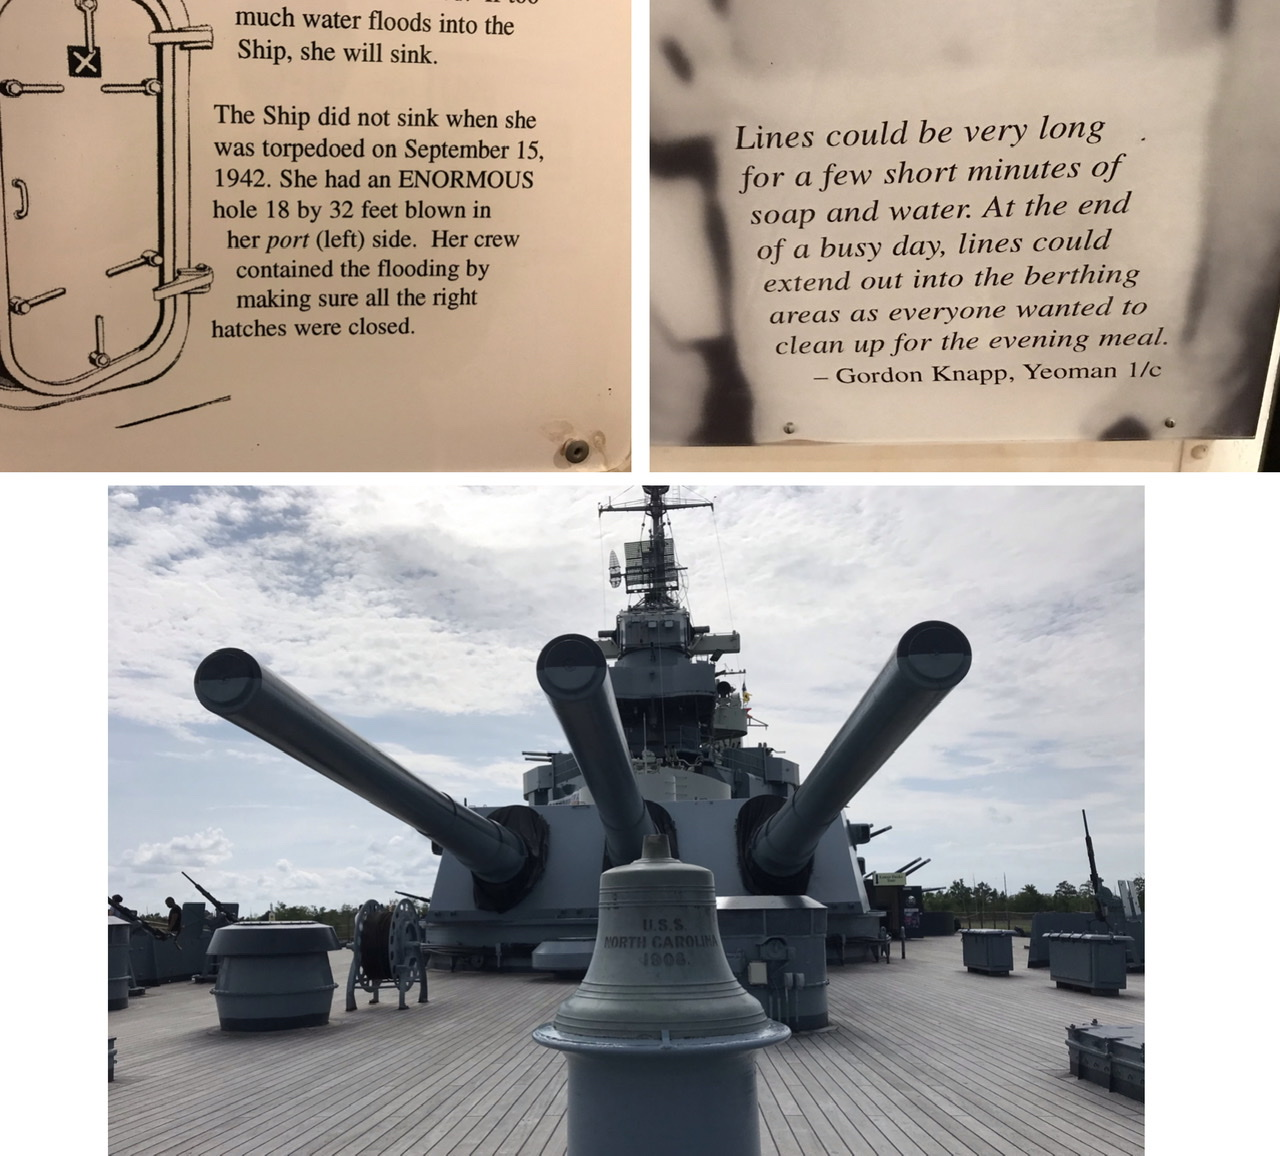 Photos from the tour of the USS North Carolina.  Photos taken by and the property of FourWalls.